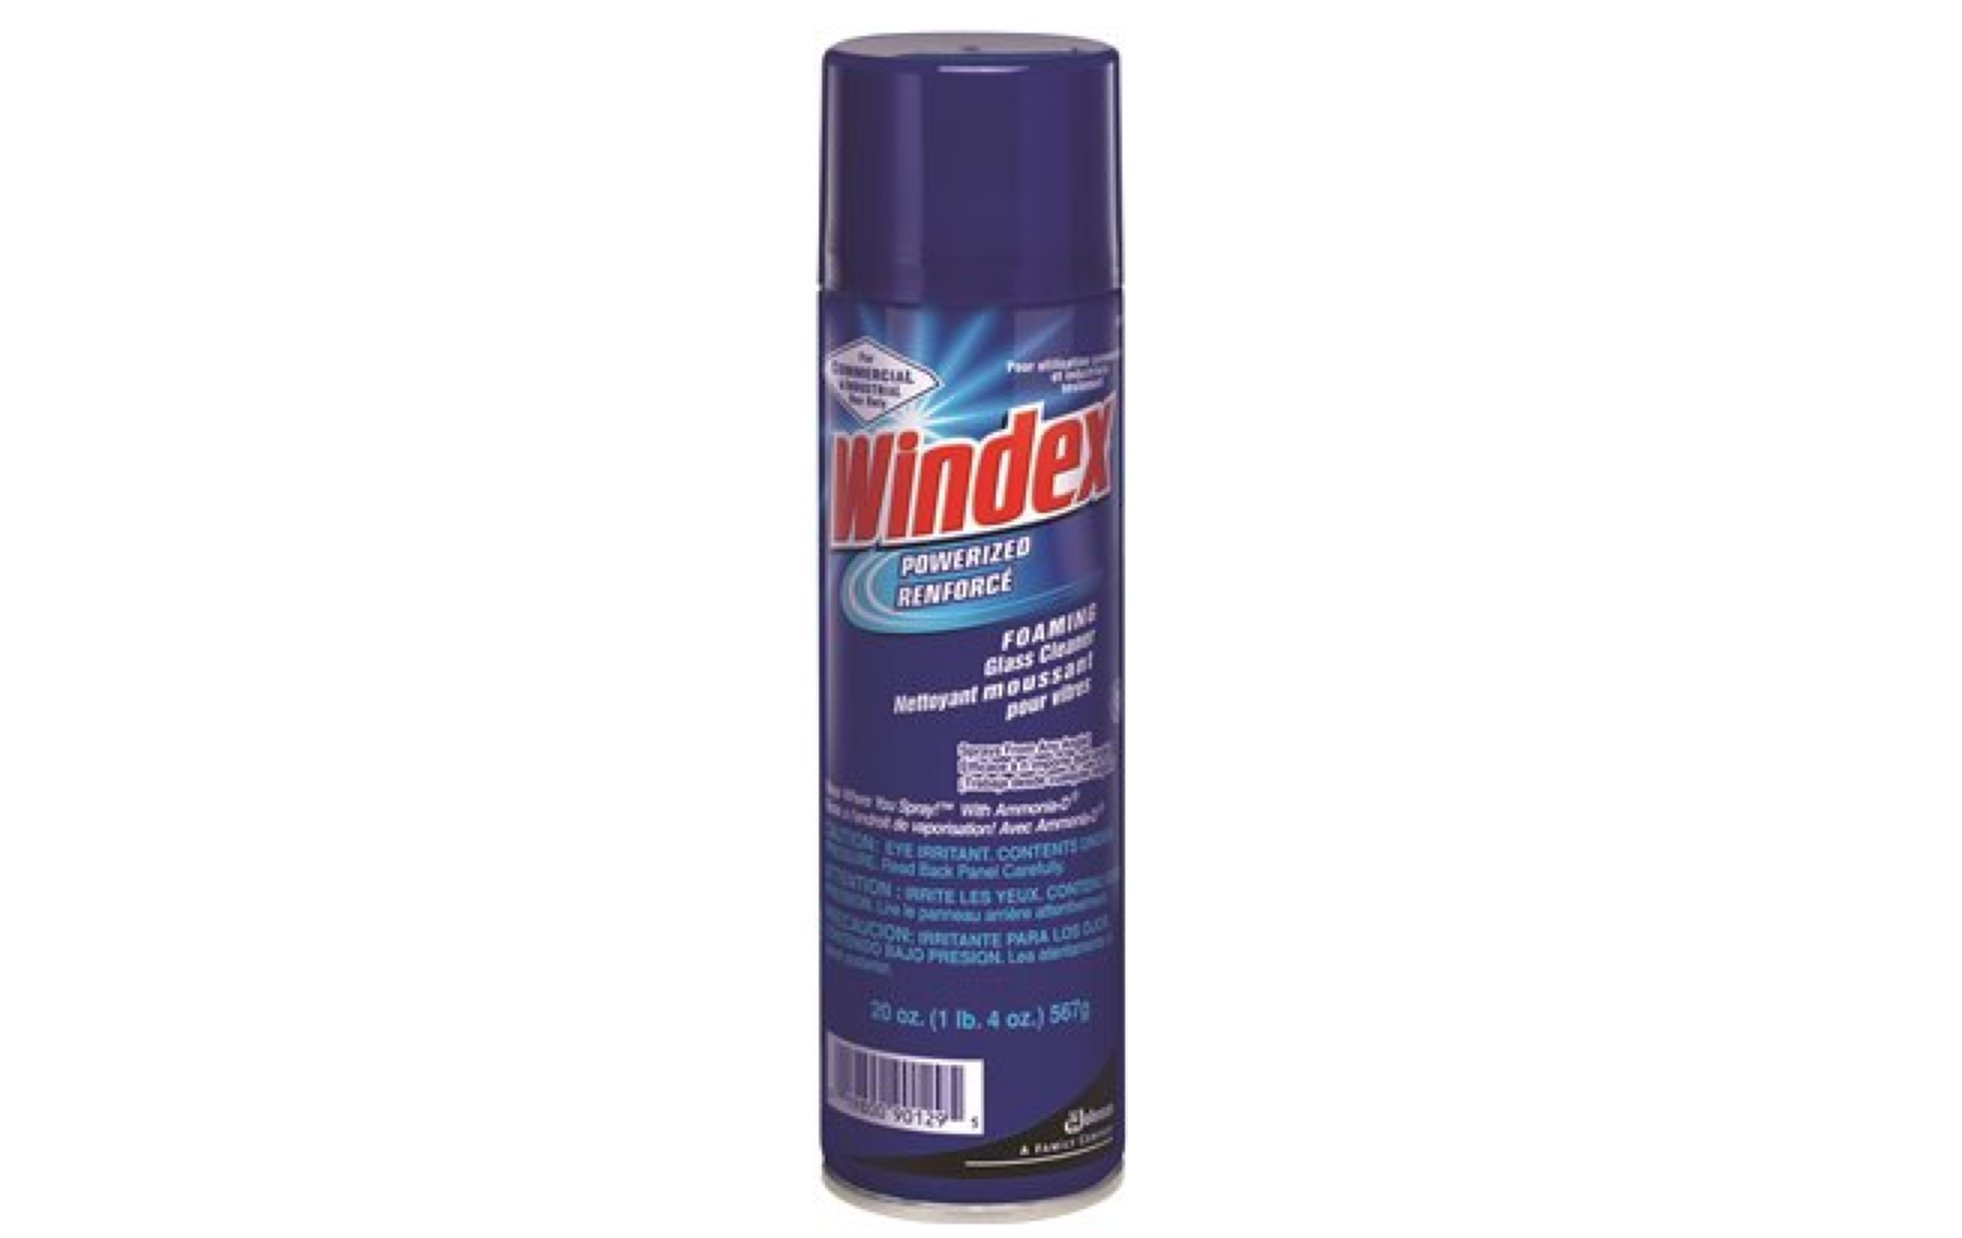 Windex Powerized Foaming Glass Cleaner Aerosol with Ammonia-D (19.7-Ounce, 12-Pack)